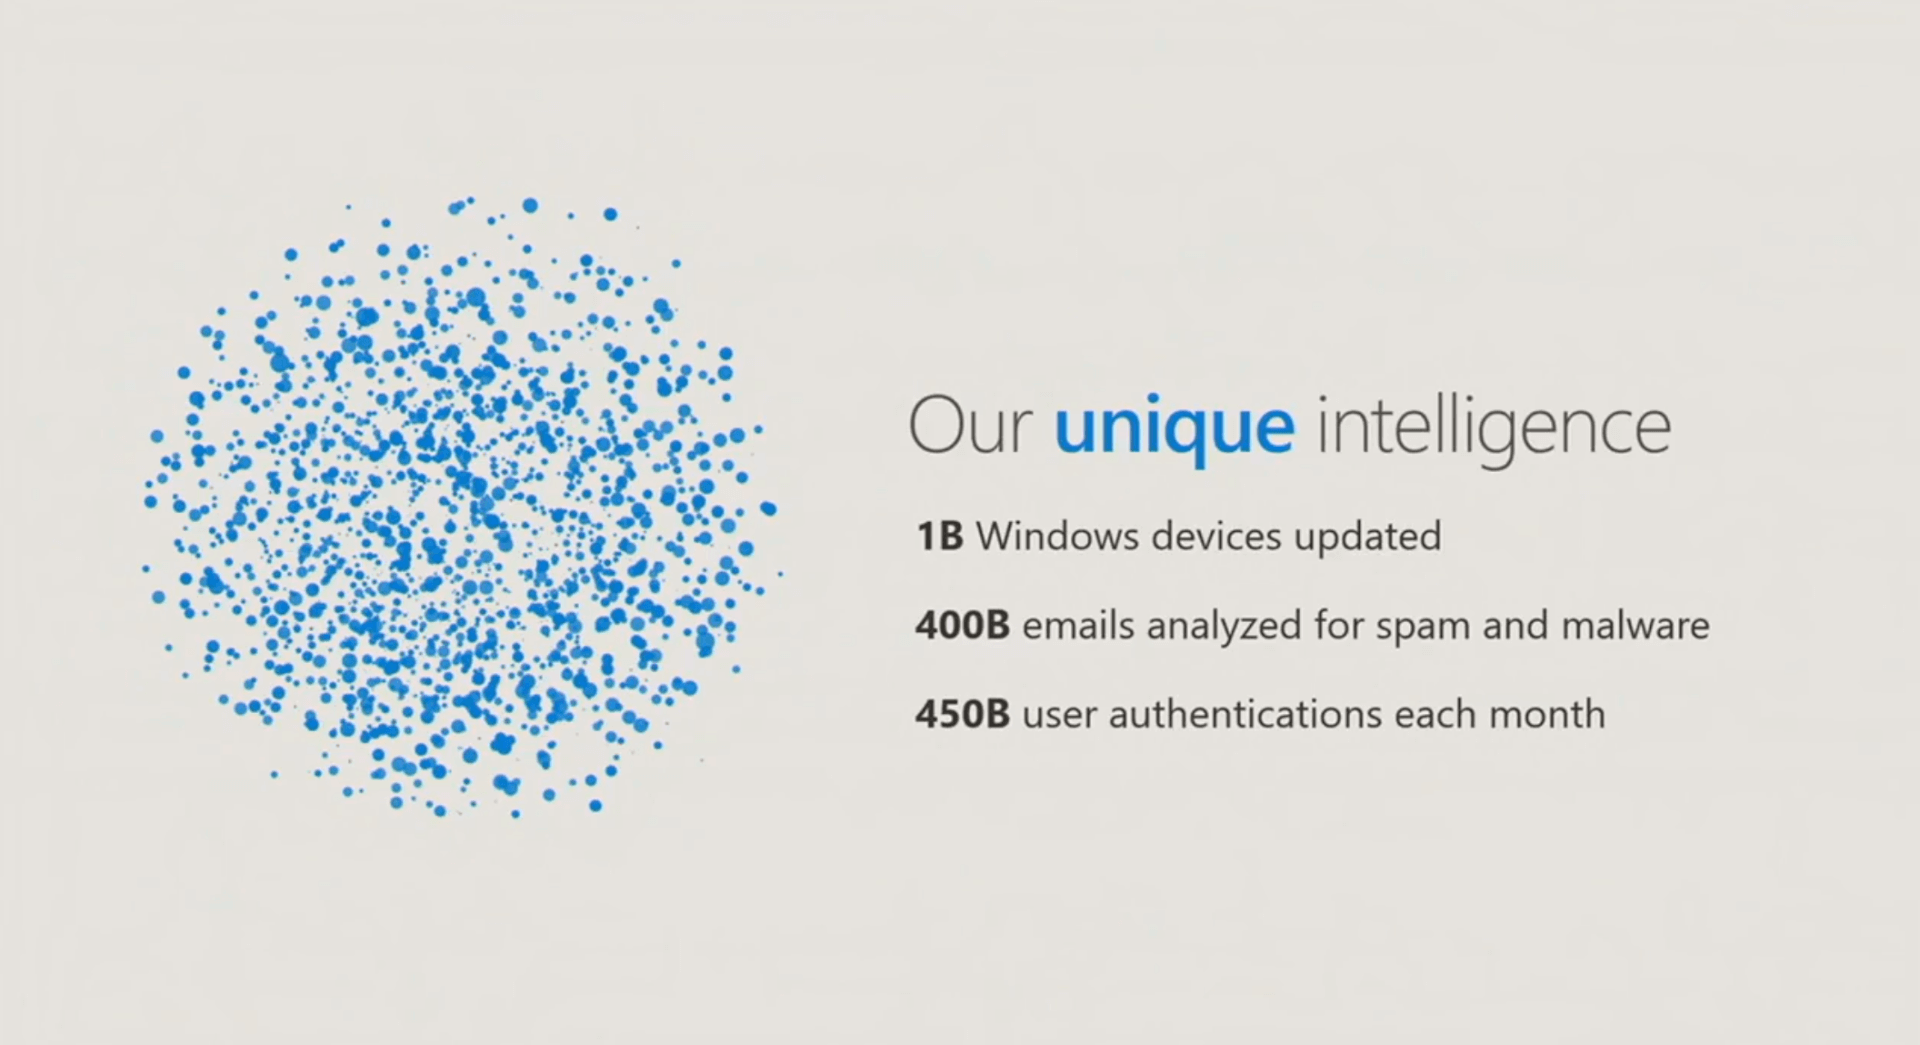 Texte de remplacement généré par une machine : Our unique intelligence IB Windows devices updated 400B emails analyzed for spam and malware 450B user authentications each month